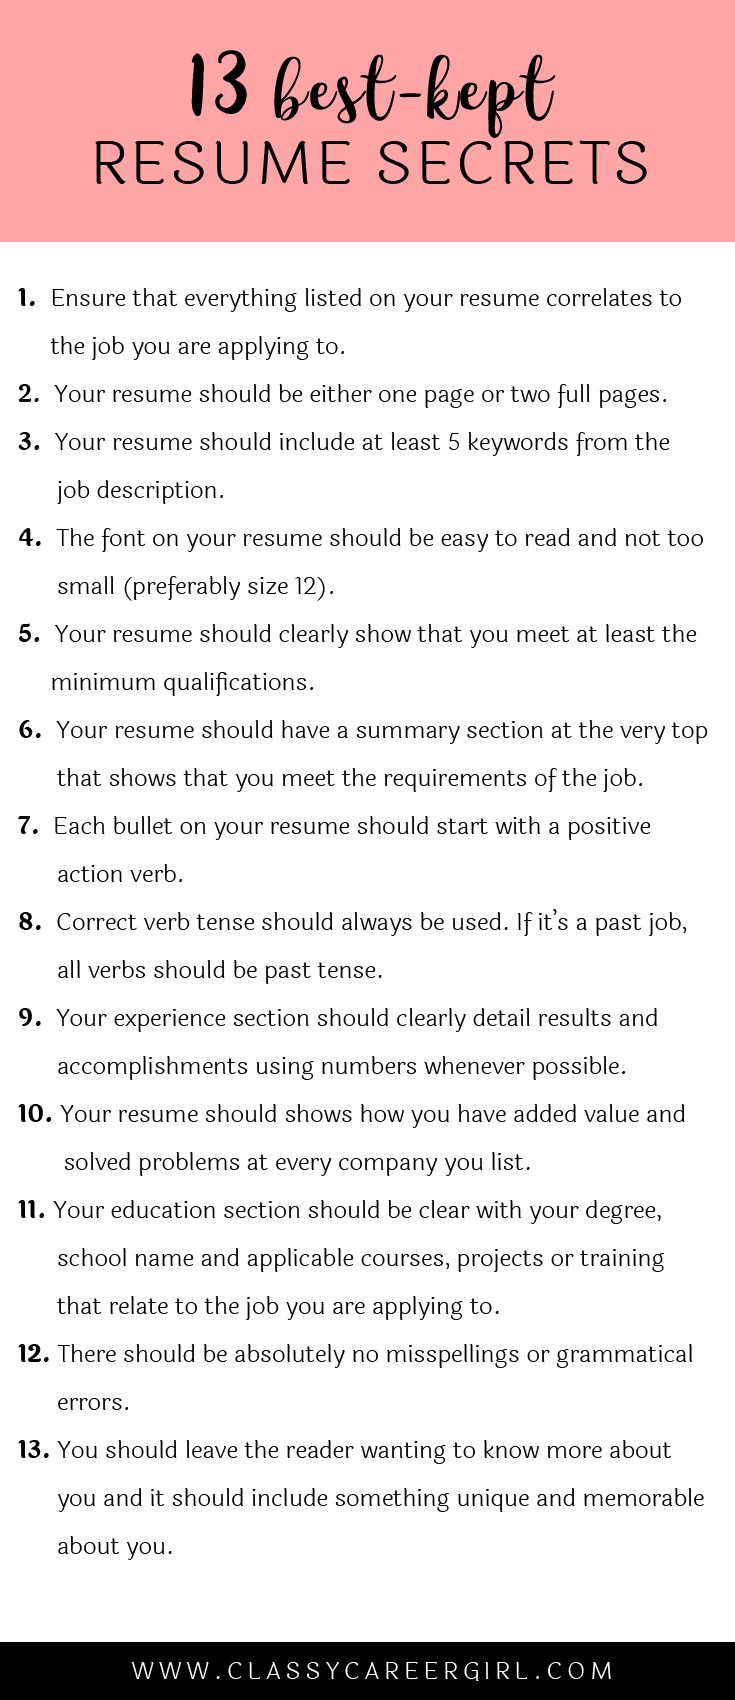 Picnictoimpeachus  Nice  Ideas About Resume On Pinterest  Cv Format Resume Cv And  With Fair Some Hiring Managers Will Toss Your Resume Out If You Dont Know These  With Breathtaking Free Resume Service Also Waitress Description For Resume In Addition Model Resume Example And Make A Free Resume And Download For Free As Well As Security Guard Resume Objective Additionally Google Resume Template Free From Pinterestcom With Picnictoimpeachus  Fair  Ideas About Resume On Pinterest  Cv Format Resume Cv And  With Breathtaking Some Hiring Managers Will Toss Your Resume Out If You Dont Know These  And Nice Free Resume Service Also Waitress Description For Resume In Addition Model Resume Example From Pinterestcom